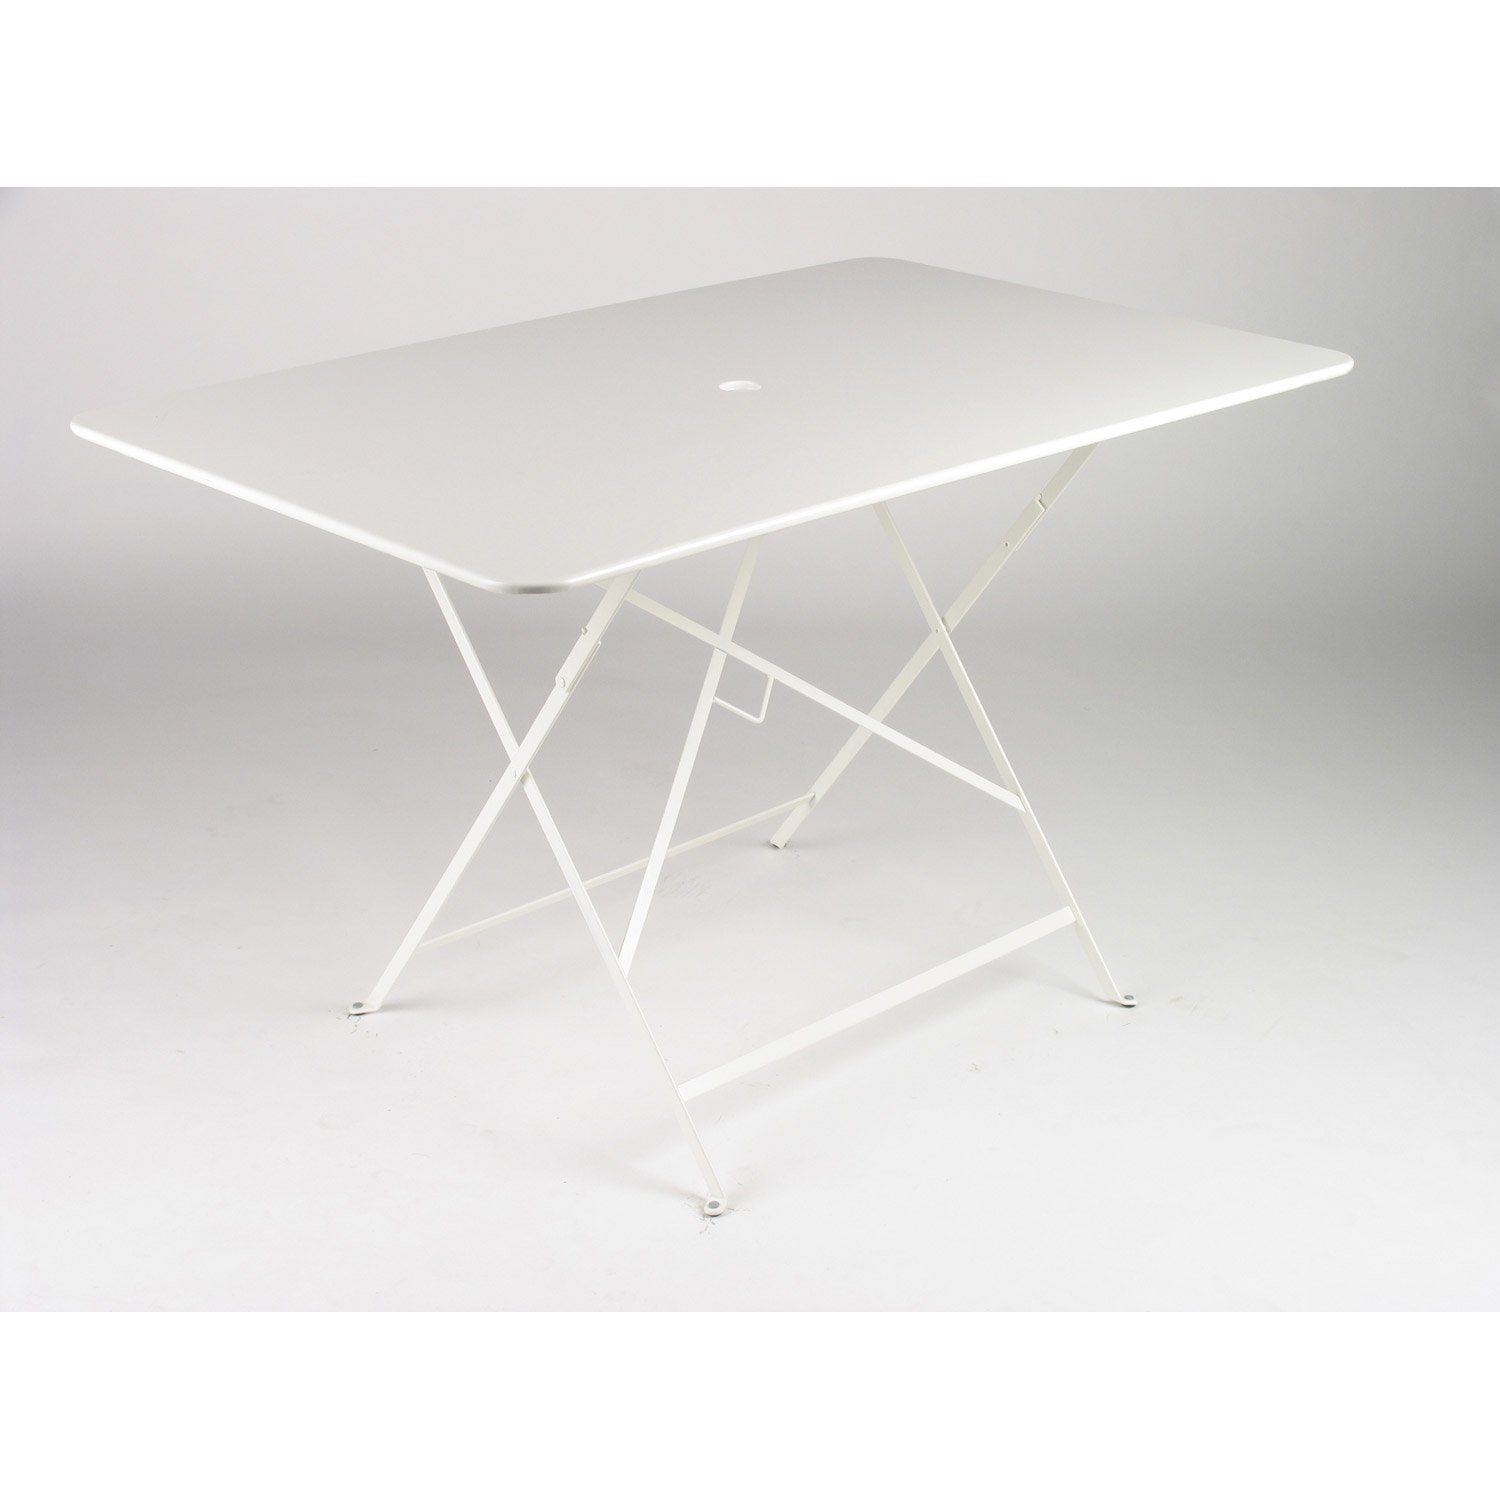 Emejing table de jardin pliante blanche ideas awesome for Petite table pliante